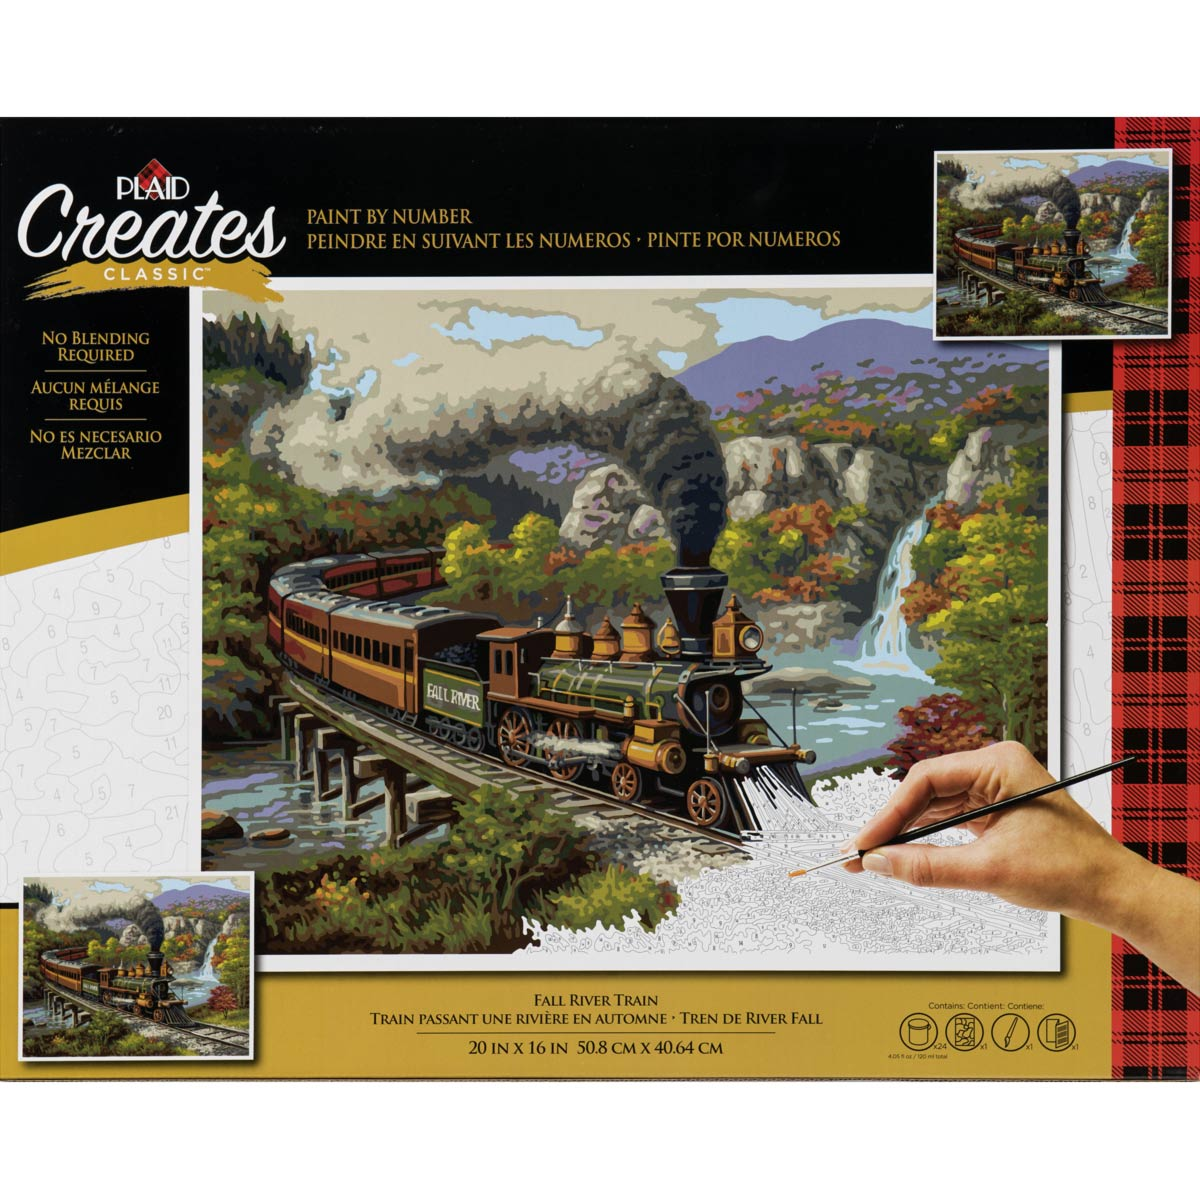 Plaid ® Paint by Number - Fall River Train